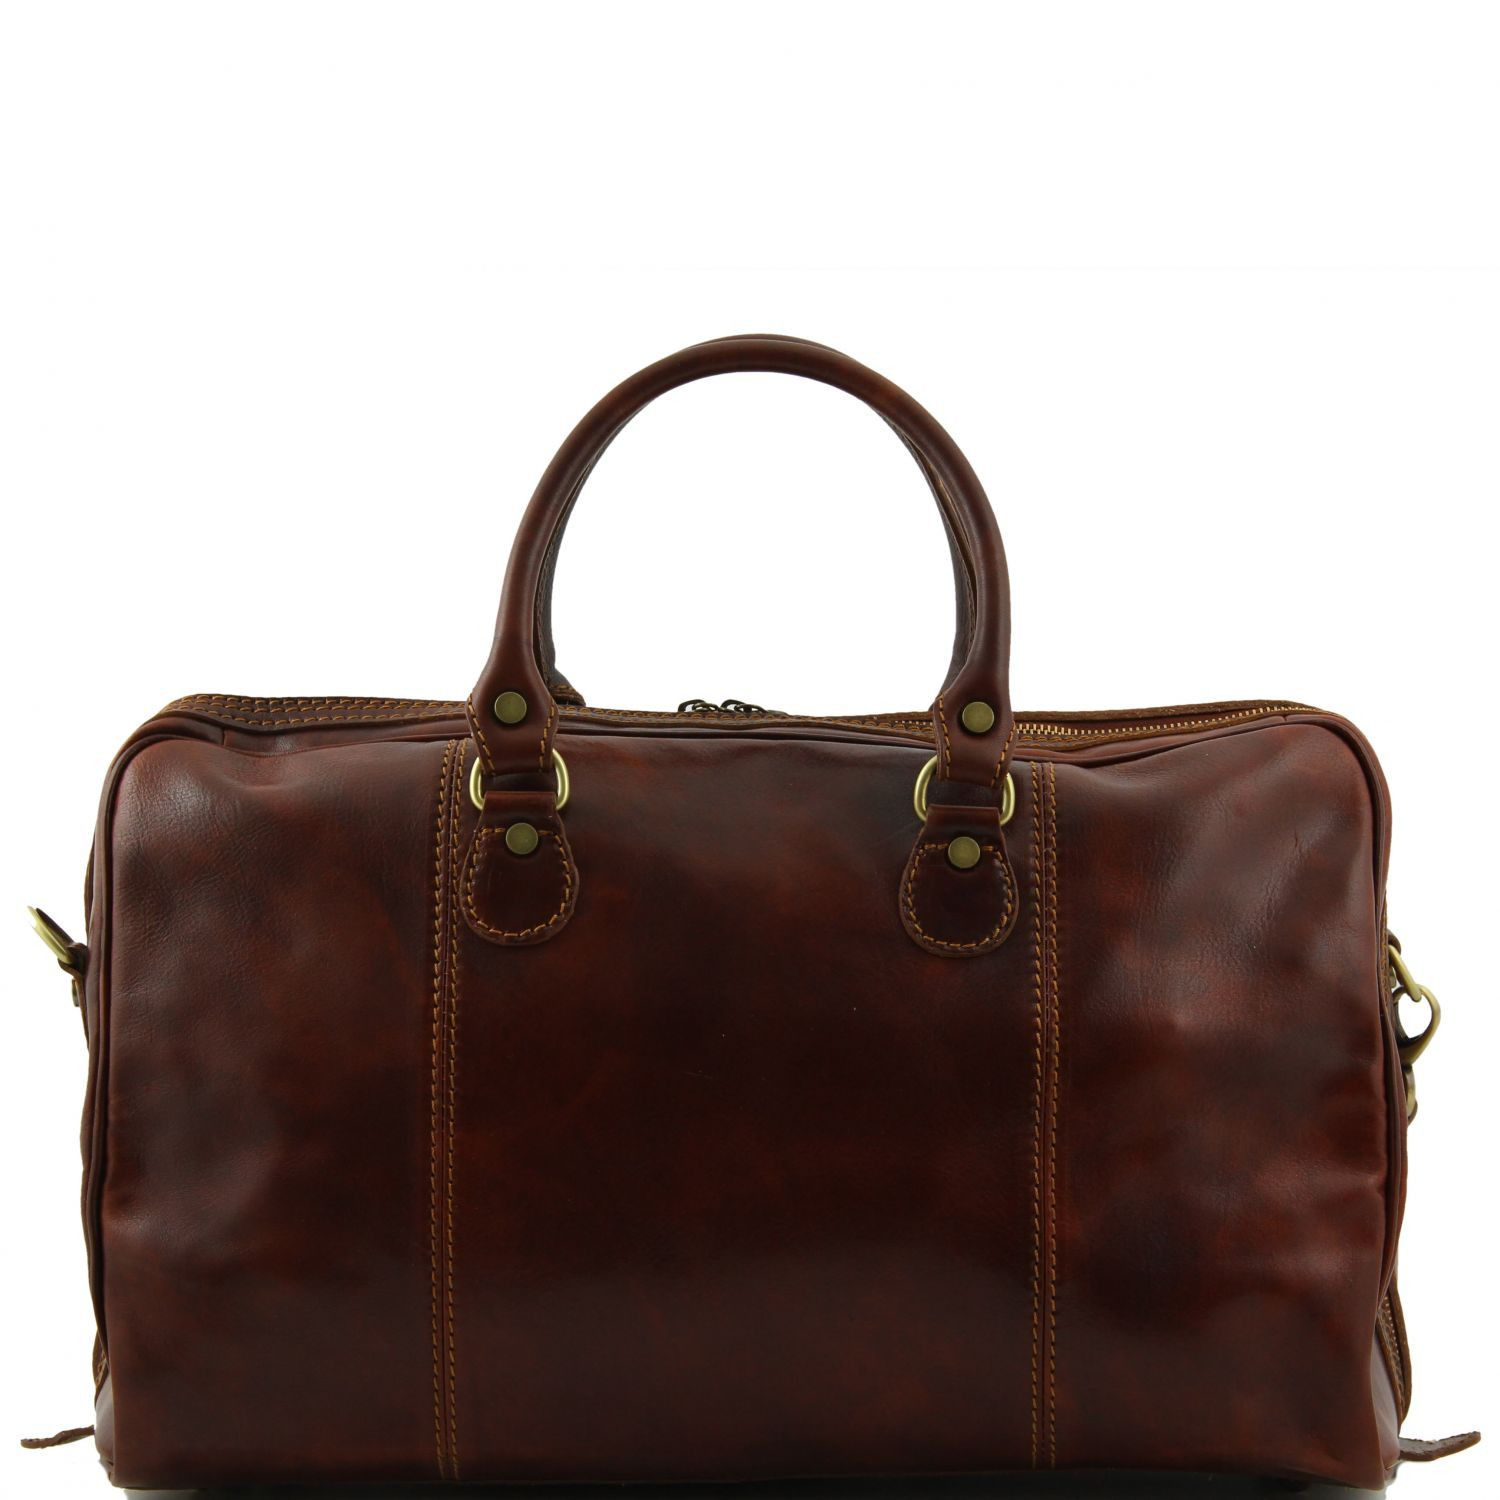 Tuscany Leather Paris Sac de voyage en cuir Miel zJ2L2dm